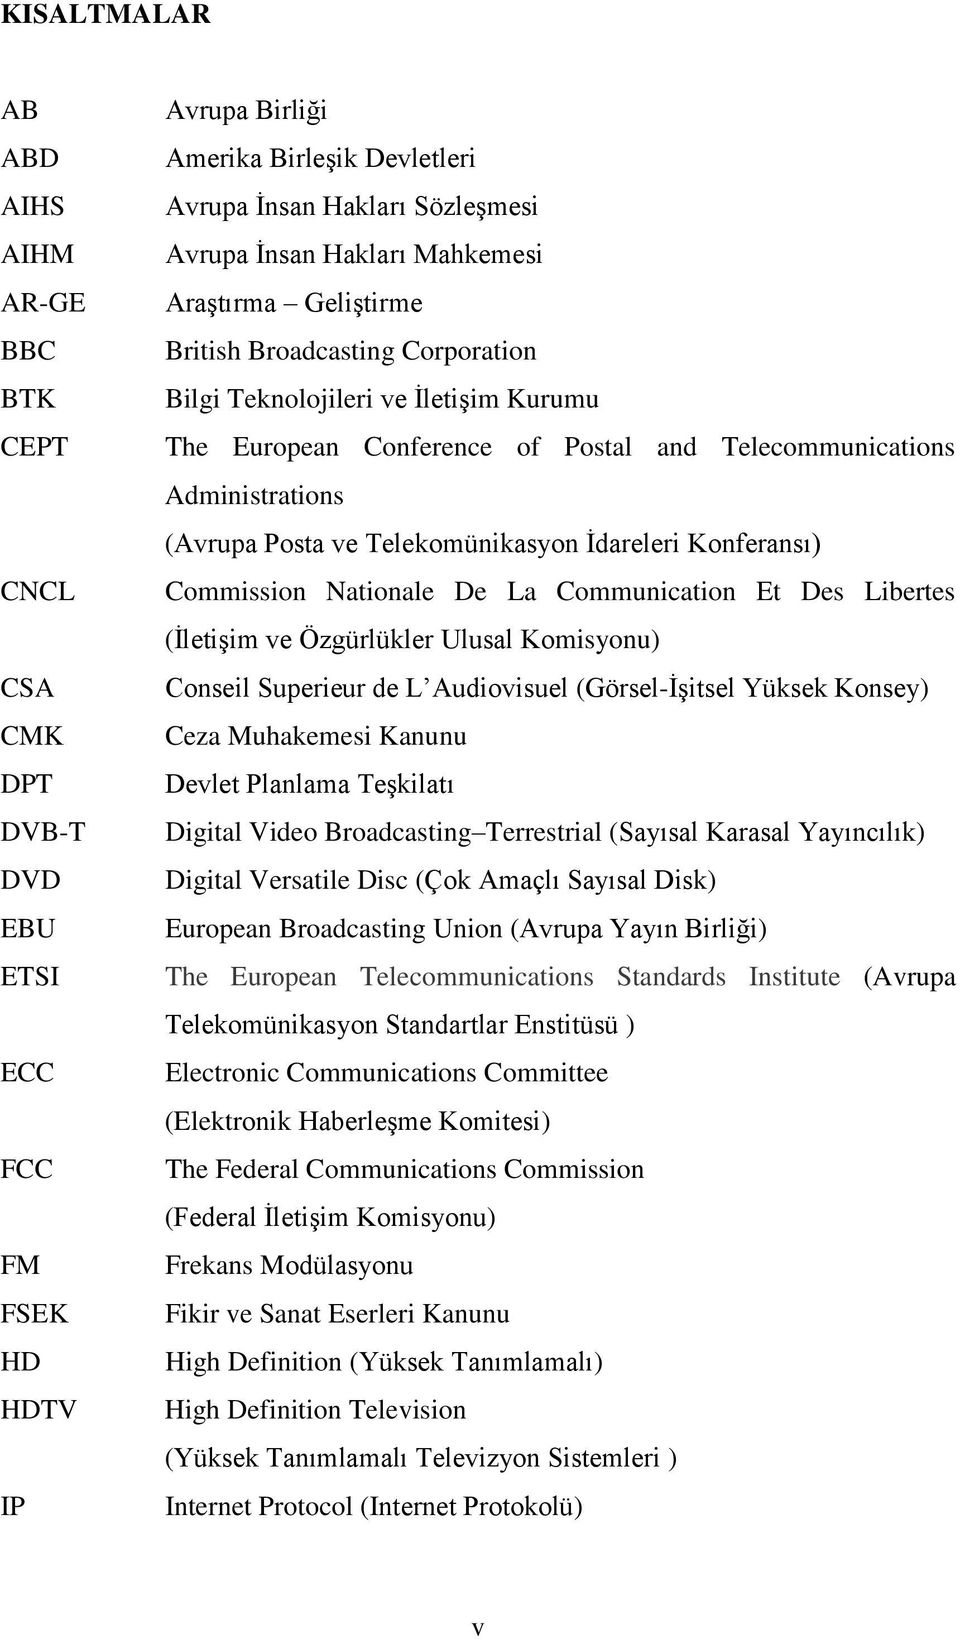 ve Telekomünikasyon İdareleri Konferansı) Commission Nationale De La Communication Et Des Libertes (İletişim ve Özgürlükler Ulusal Komisyonu) Conseil Superieur de L Audiovisuel (Görsel-İşitsel Yüksek